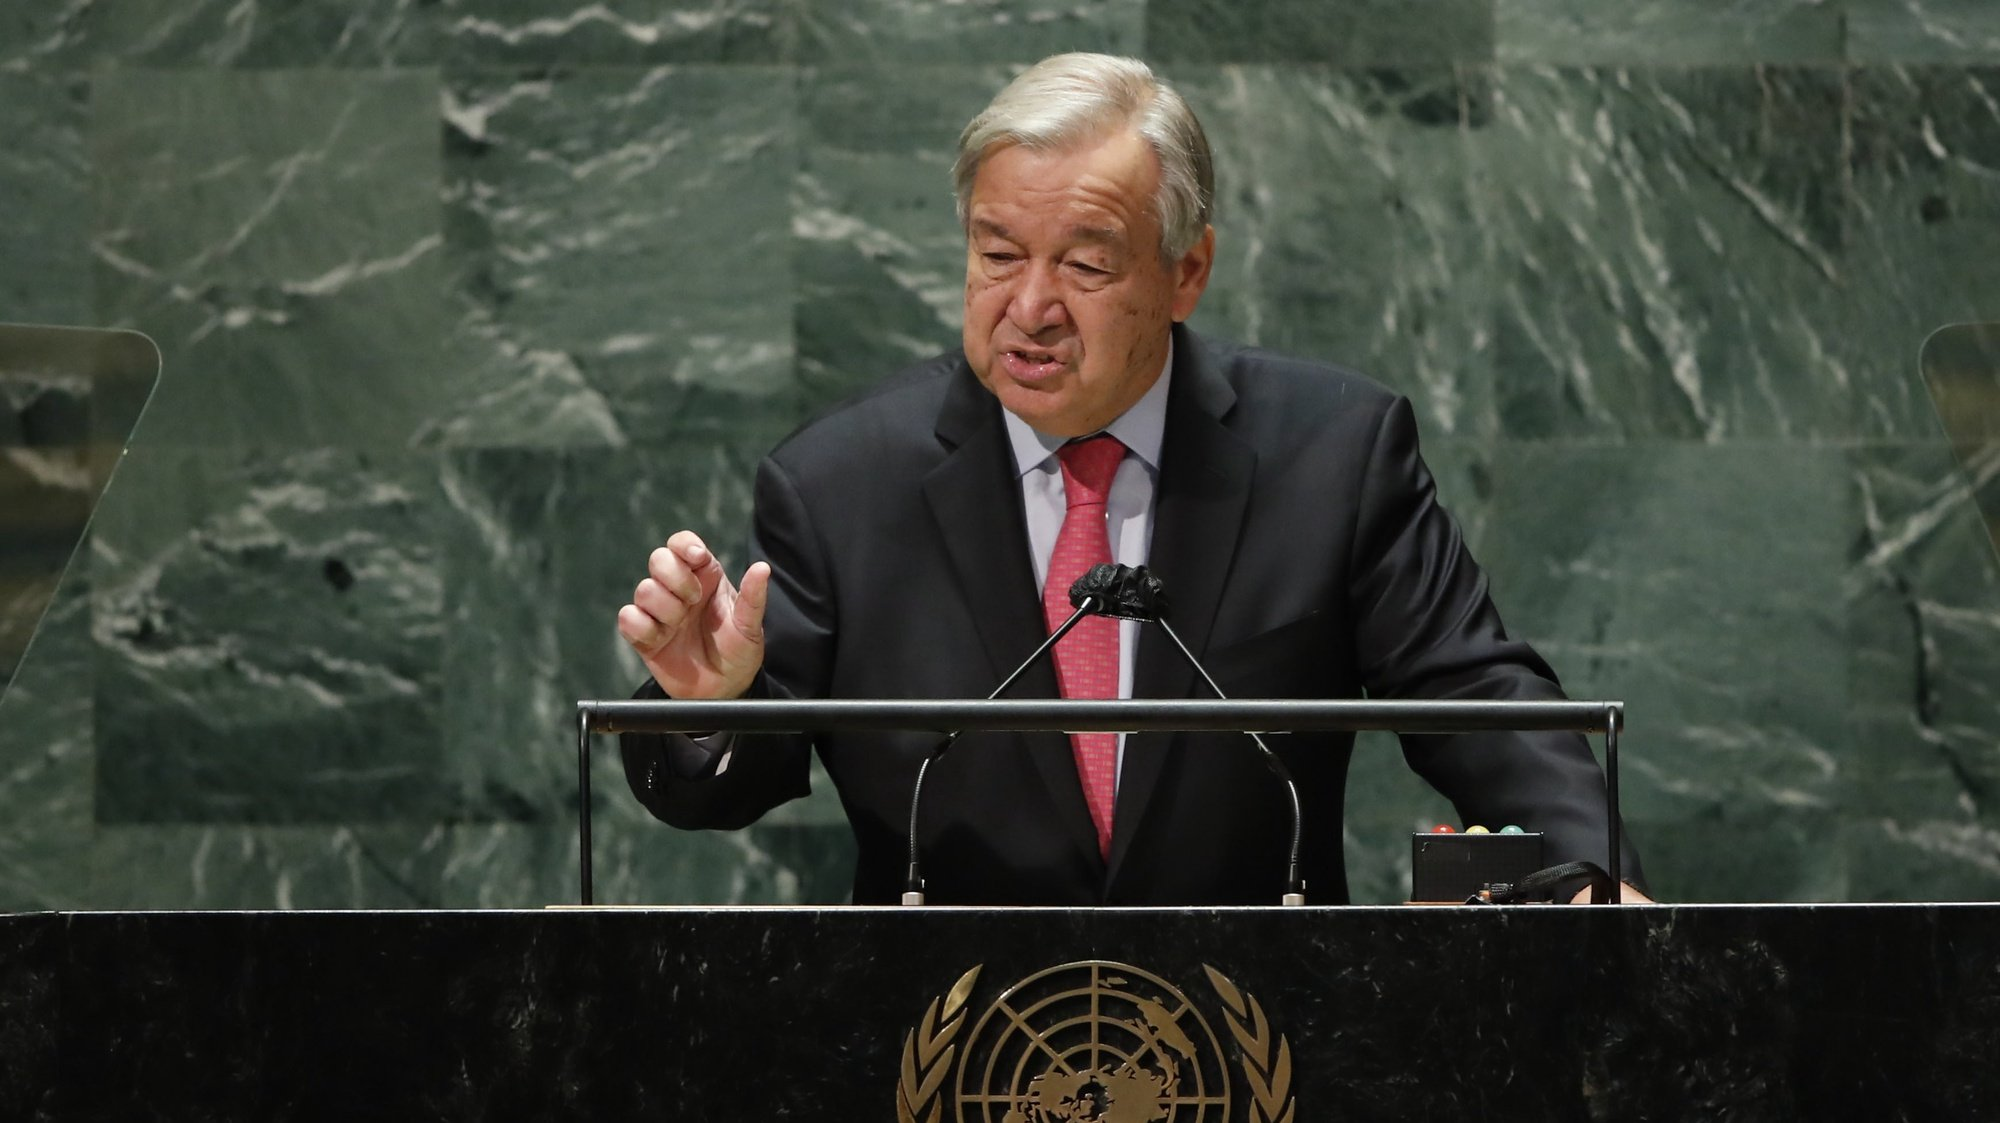 epa09479318 United Nations Secretary-General Antonio Guterres addresses the 76th Session of the UN General Assembly in New York City, USA, 21 September 2021.  EPA/EDUARDO MUNOZ / POOL